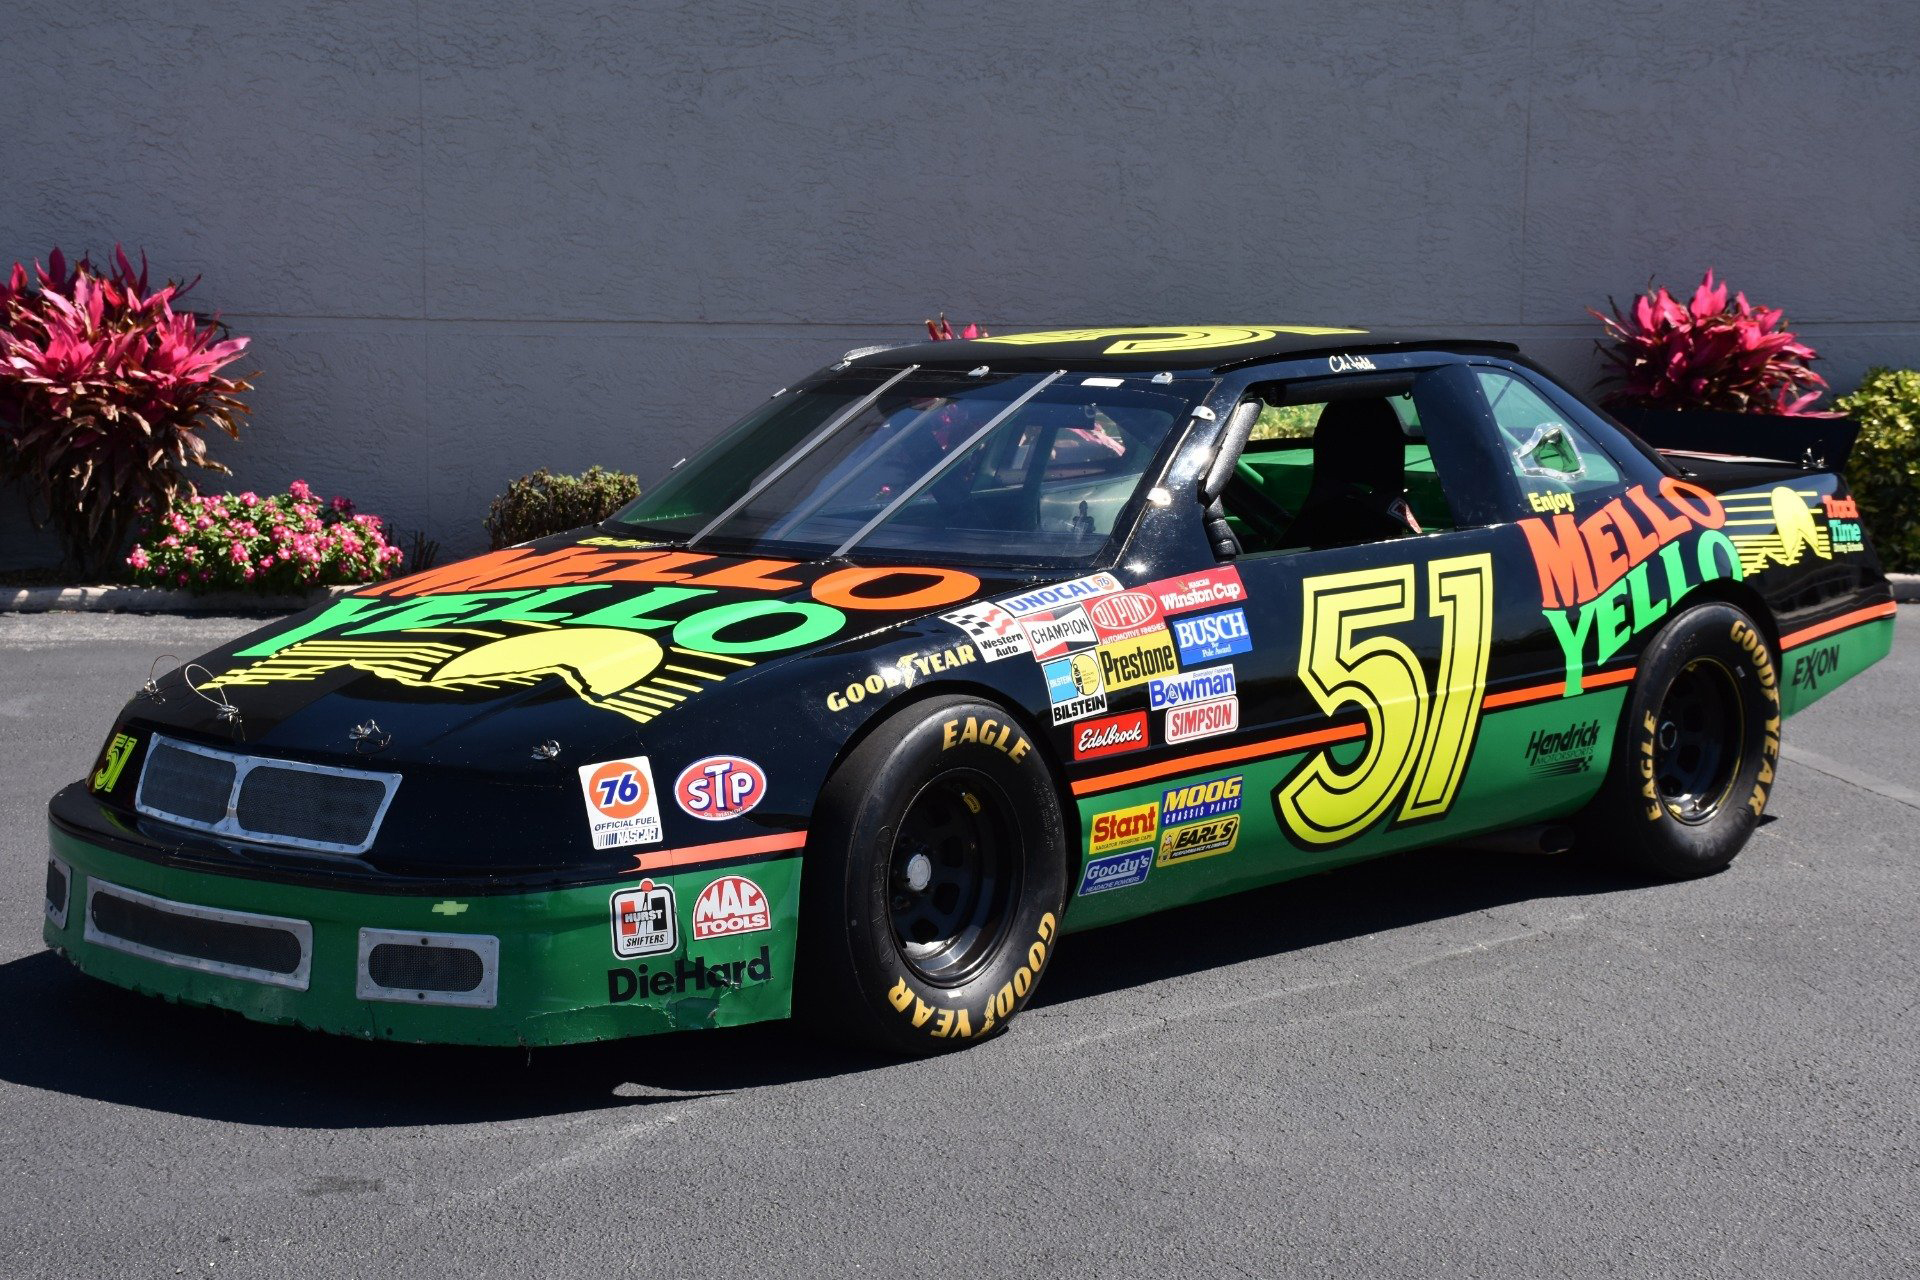 8. Days of Thunder 1989 Chevrolet Lumina Stock Car